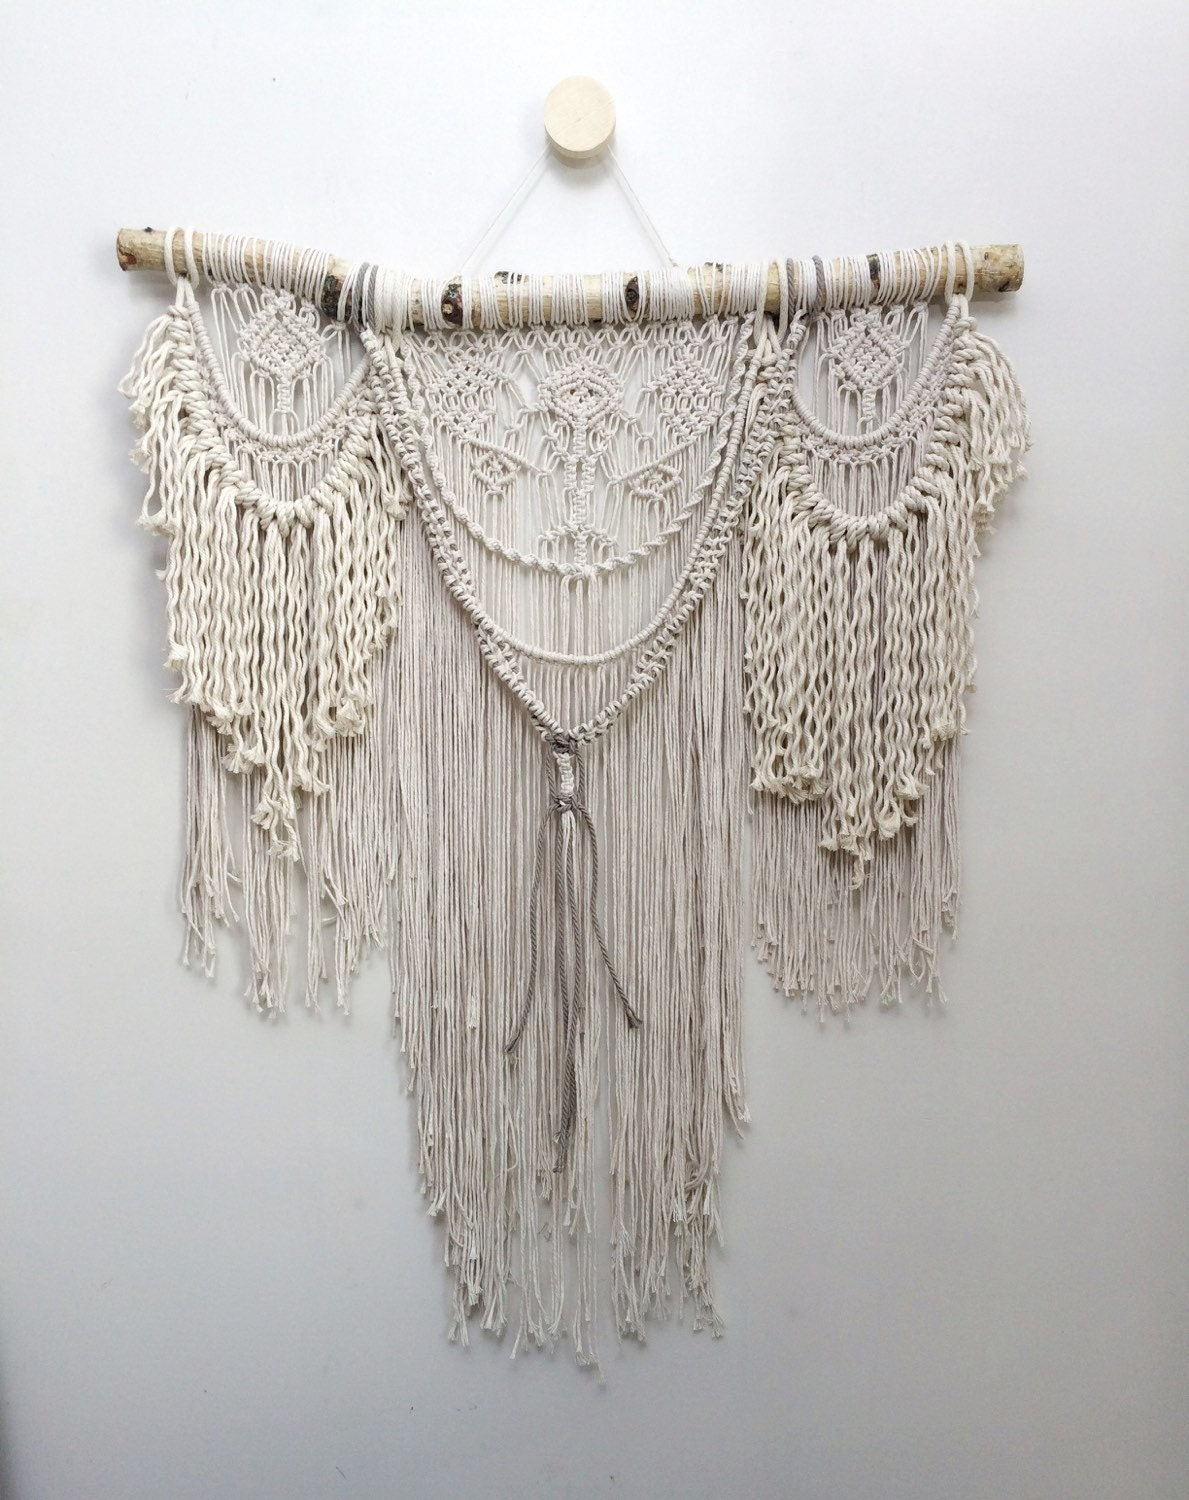 32 Large macrame wall hanging bohemian wall by NiromaStudio